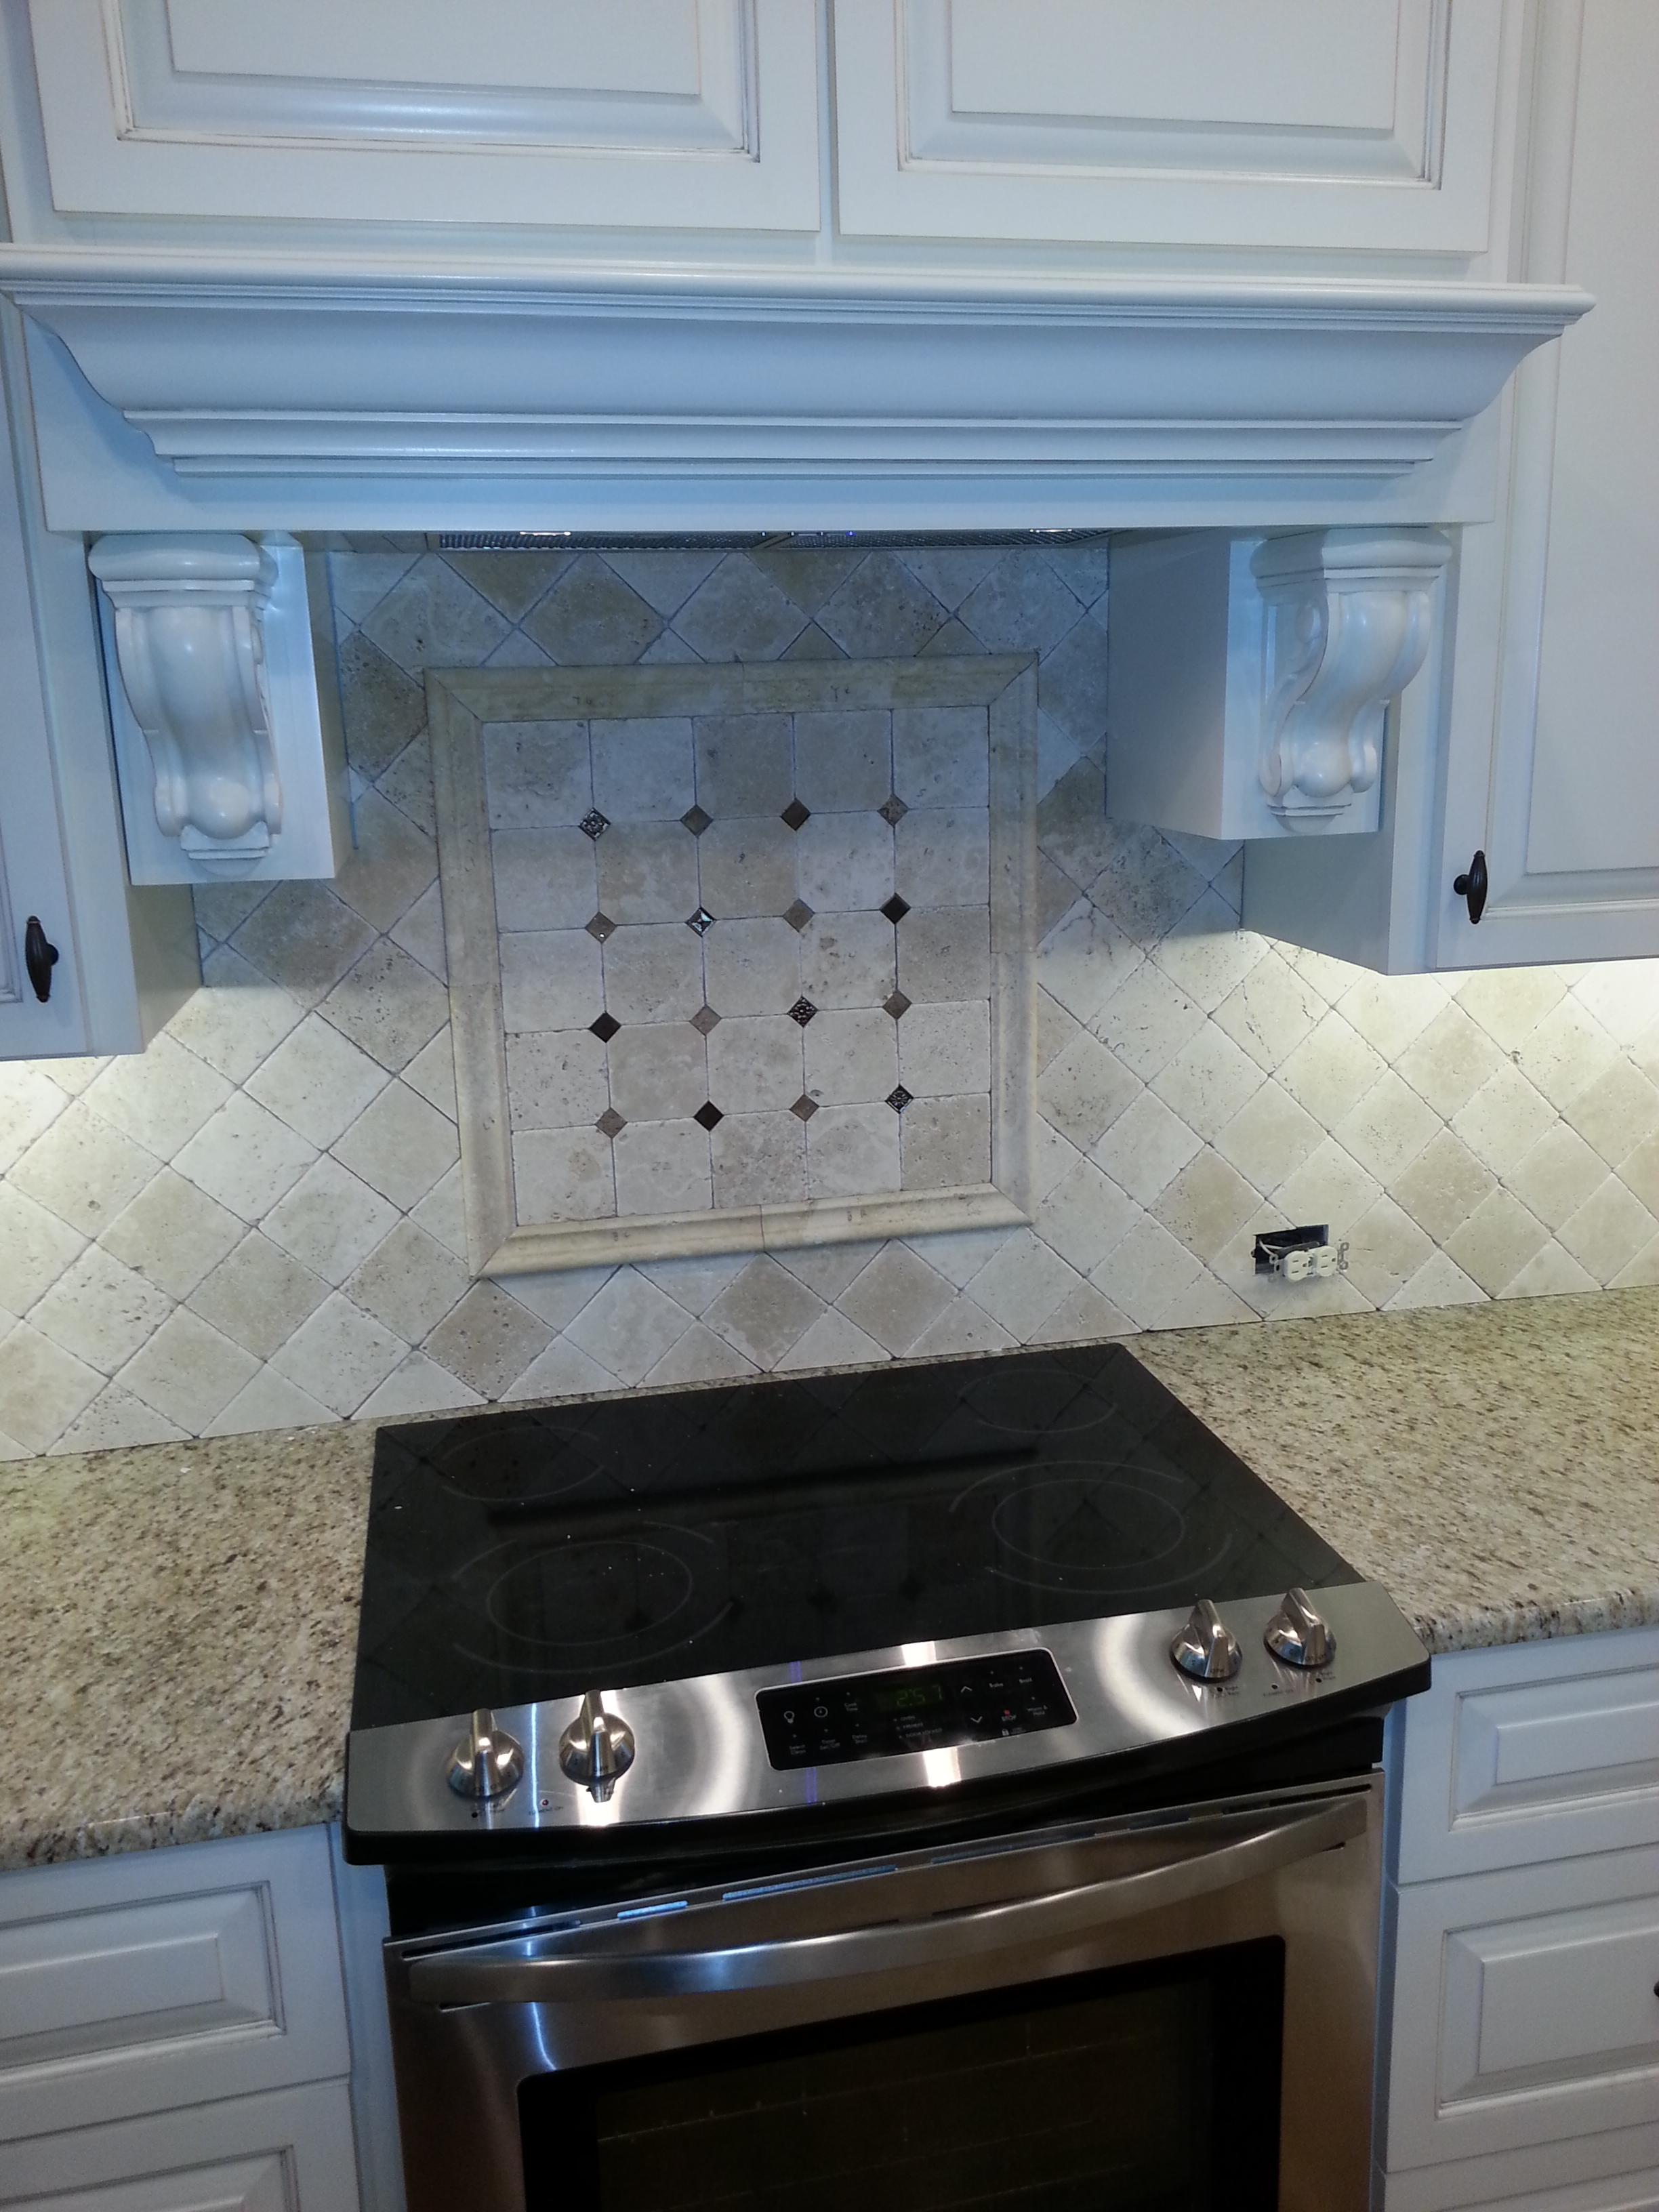 Beautiful AAA Completes Custom Kitchen Tile Backsplash Over Stove